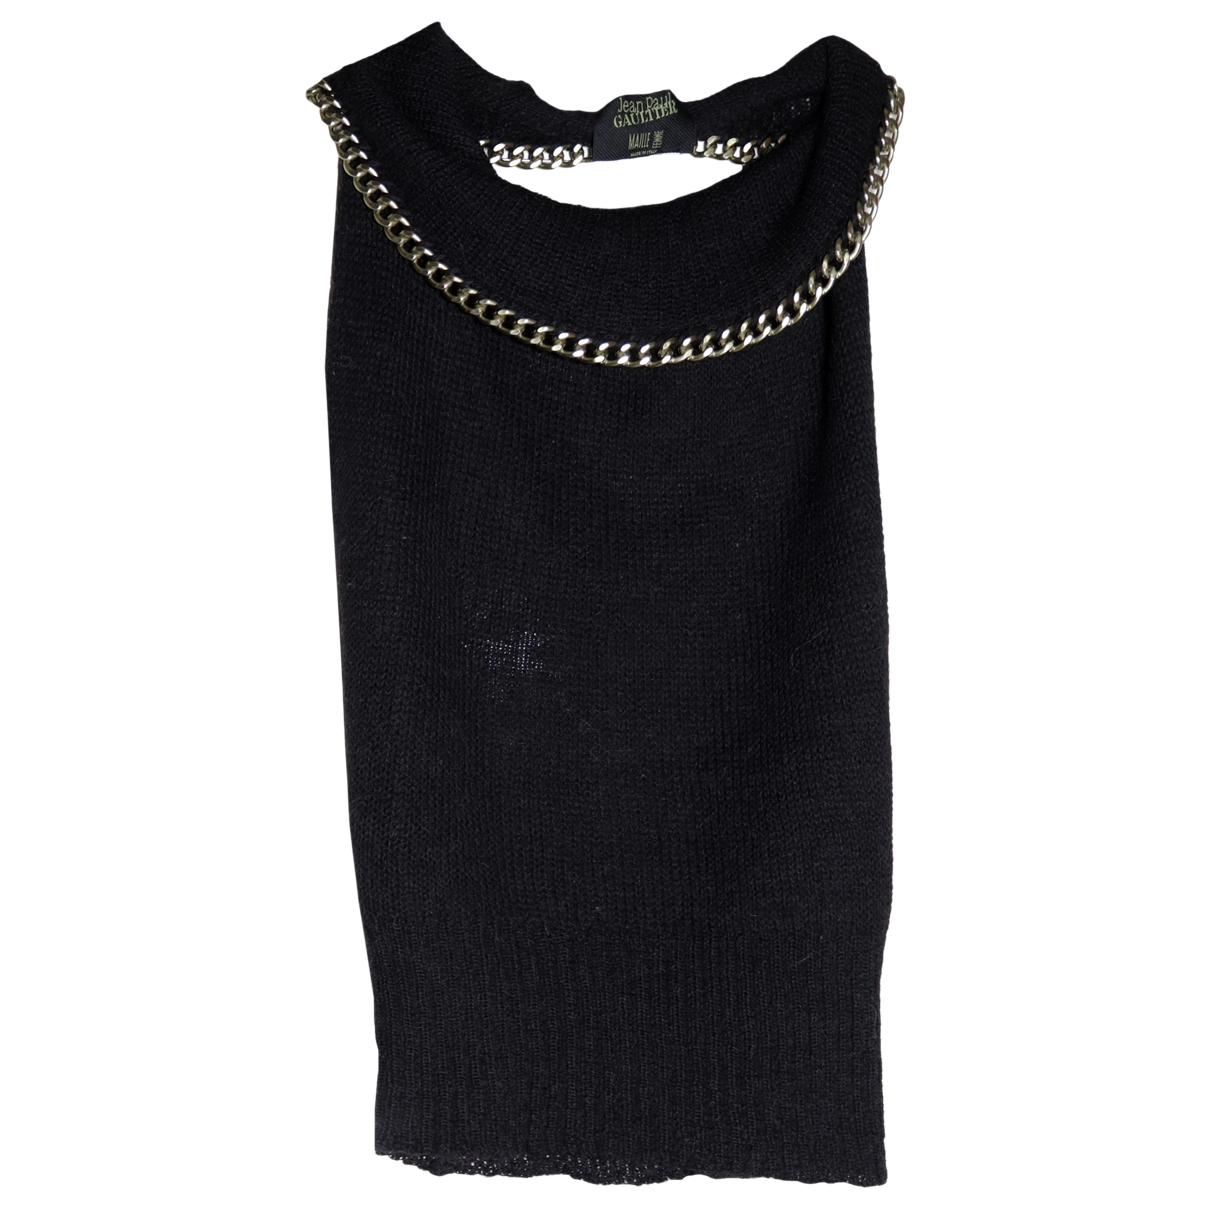 Jean Paul Gaultier \N Black Wool Knitwear for Women M International